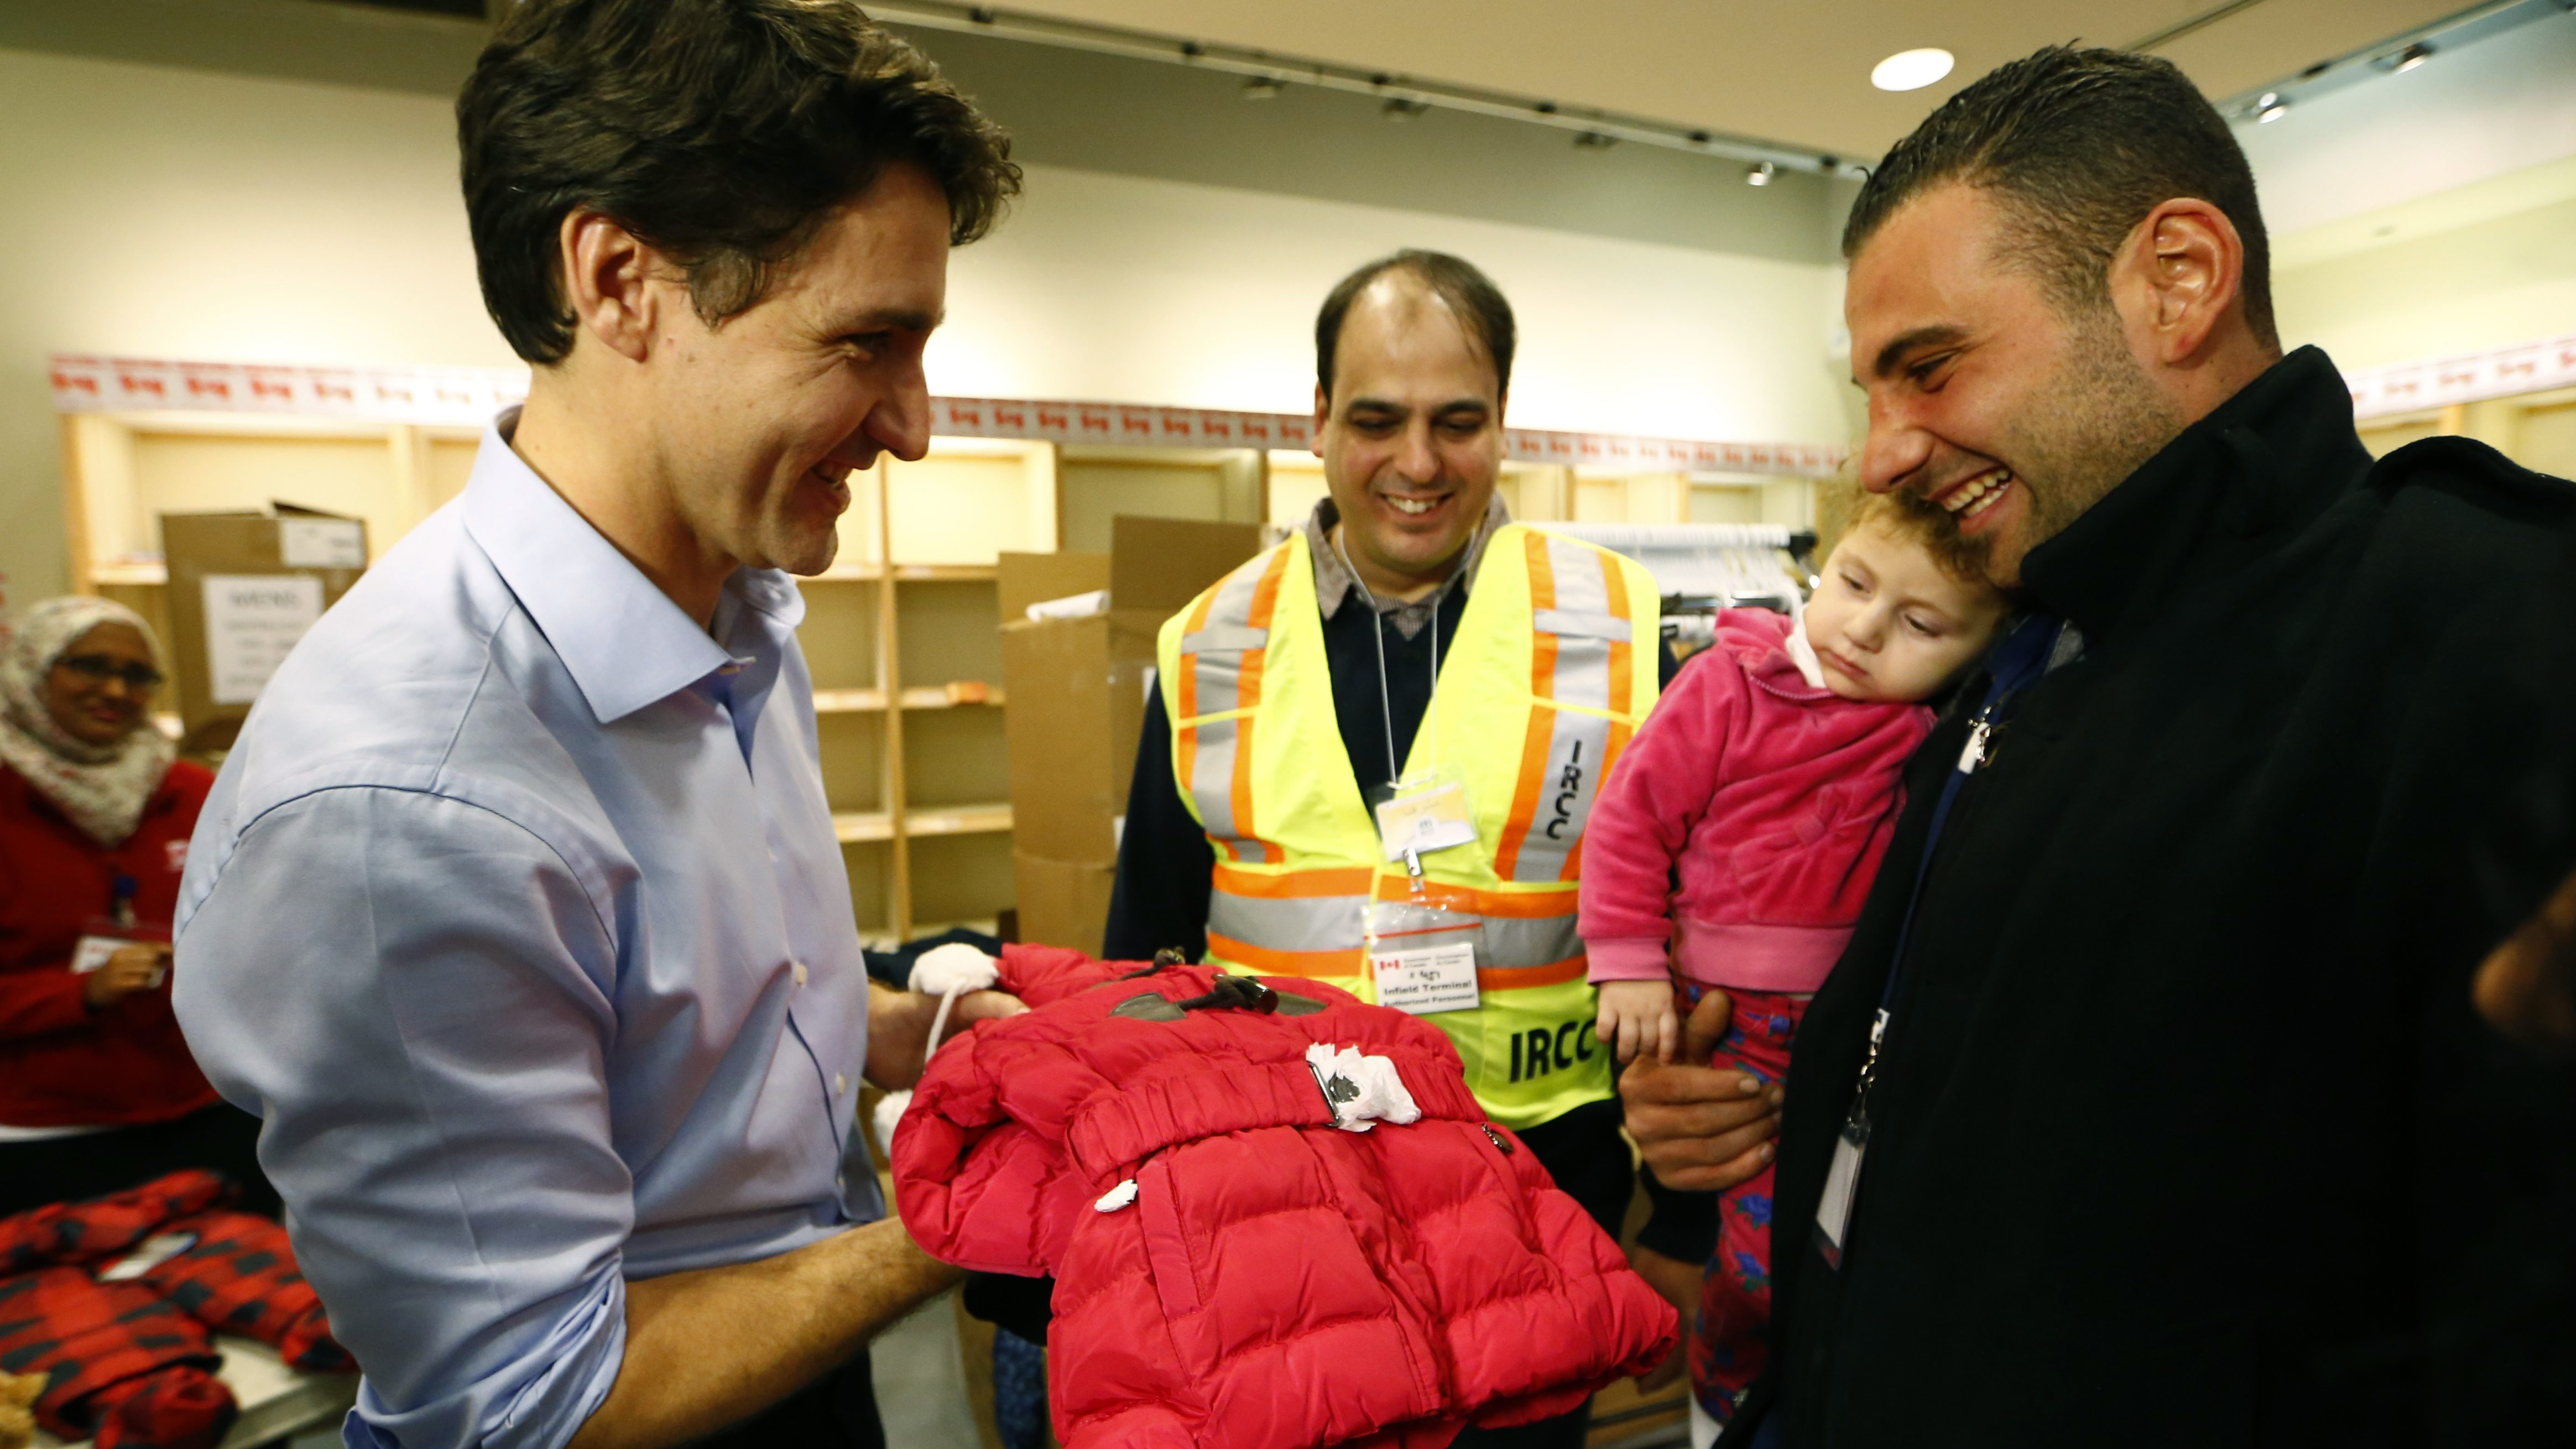 Syrian refugees are presented with a child's winter jacket by Canada's Prime Minister Justin Trudeau (L) on their arrival from Beirut at the Toronto Pearson International Airport in Mississauga, Ontario, Canada December 11, 2015. After months of promises and weeks of preparation, the first Canadian government planeload of Syrian refugees landed in Toronto on Thursday, aboard a military aircraft met by Prime Minister Justin Trudeau.